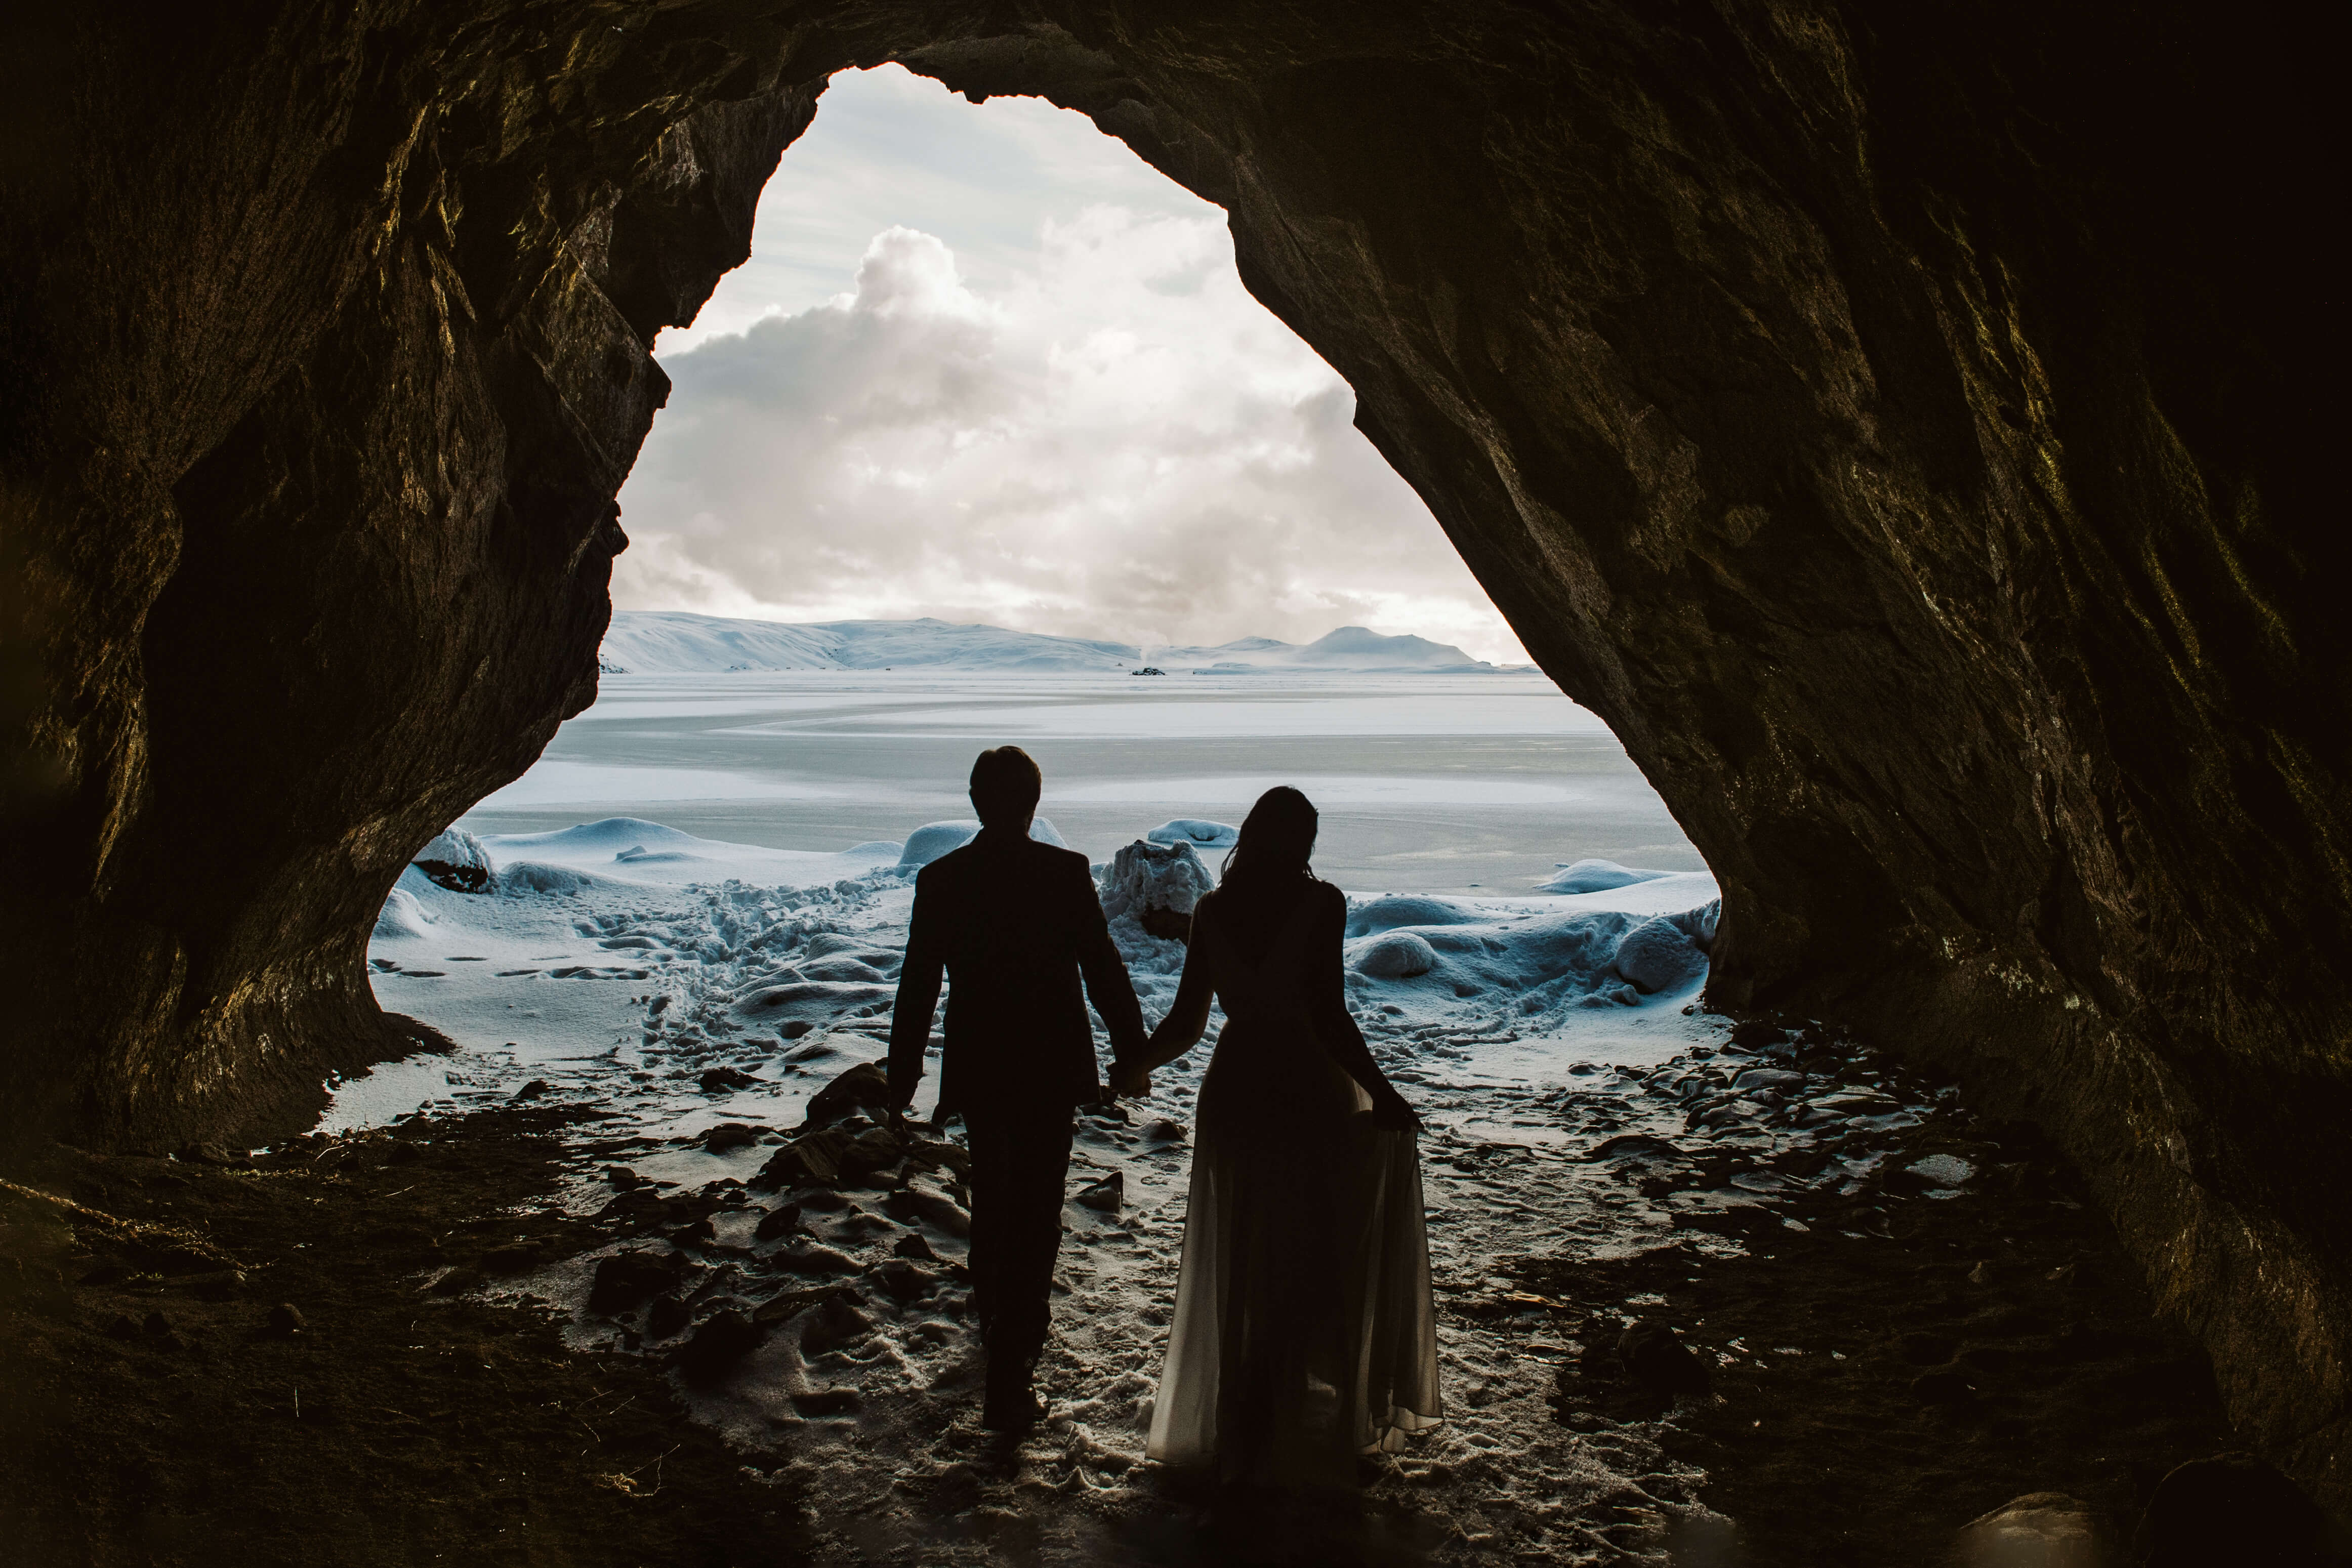 Icelandic Words and Couple in a Cave